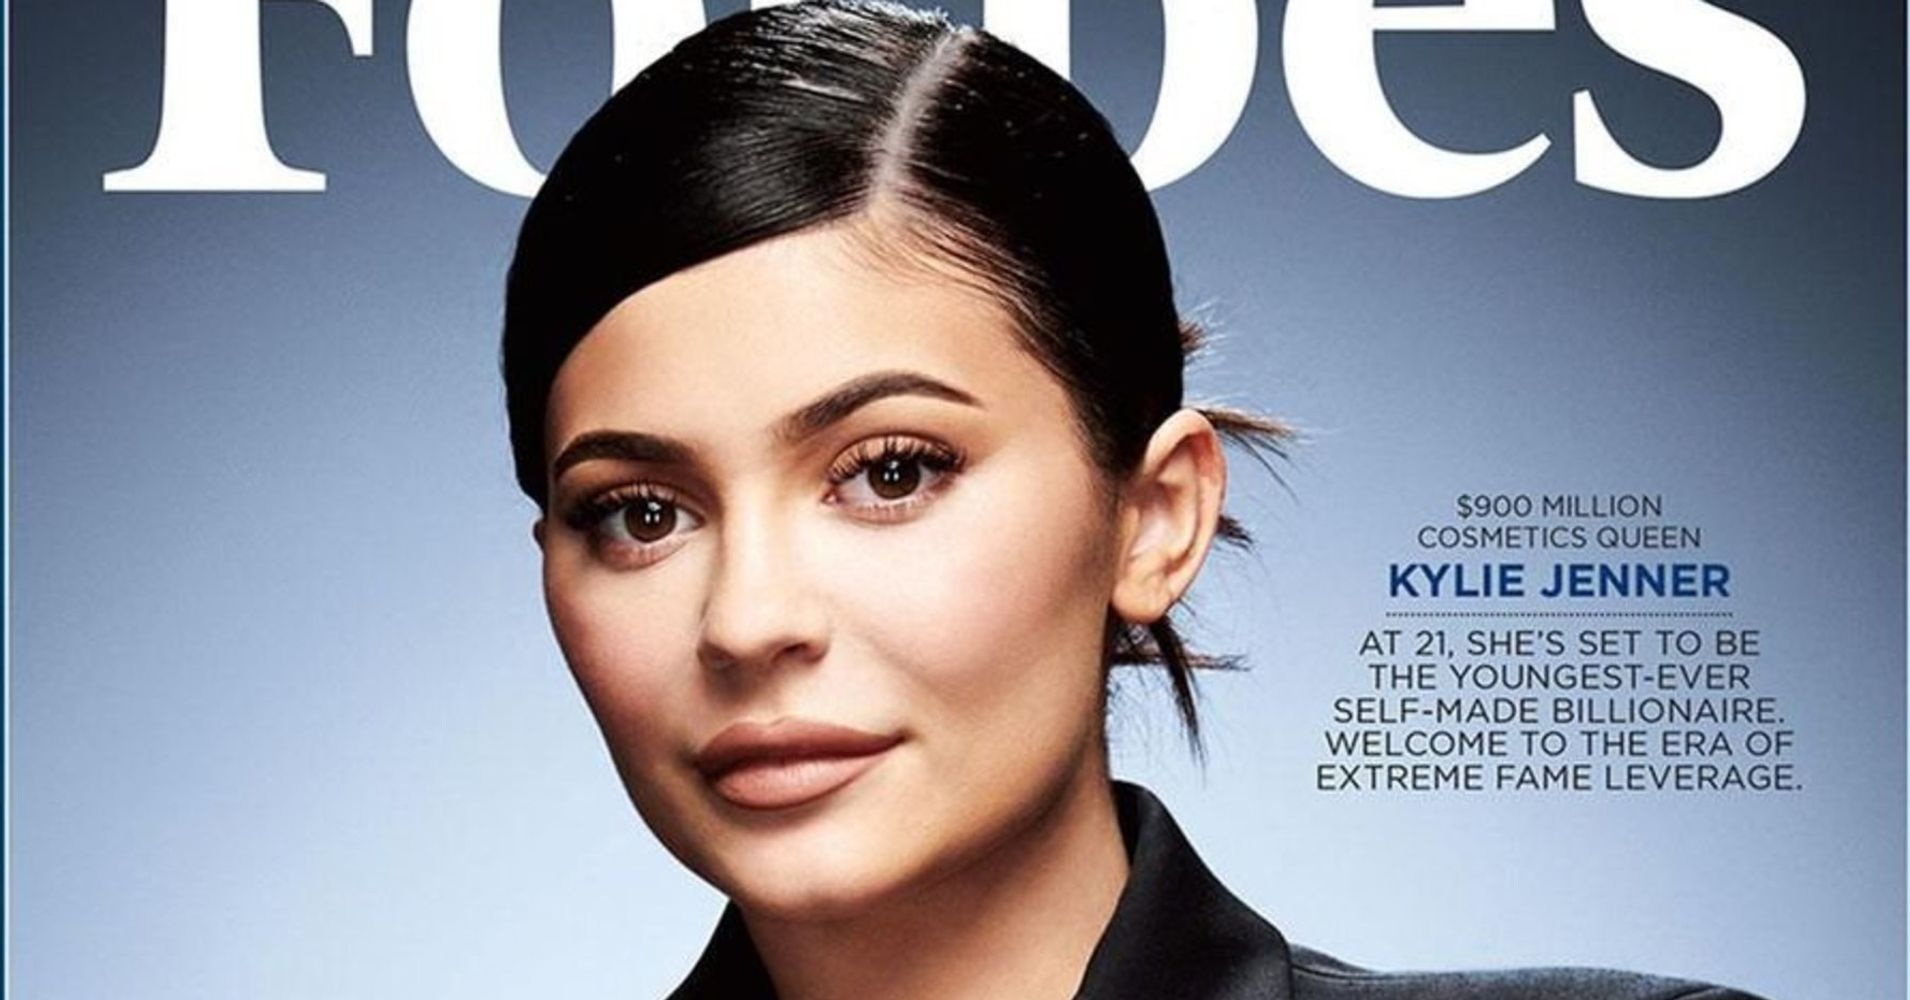 Dictionary.com Fact-Checks Forbes' Claim That Kylie Jenner Is 'Self-Made'